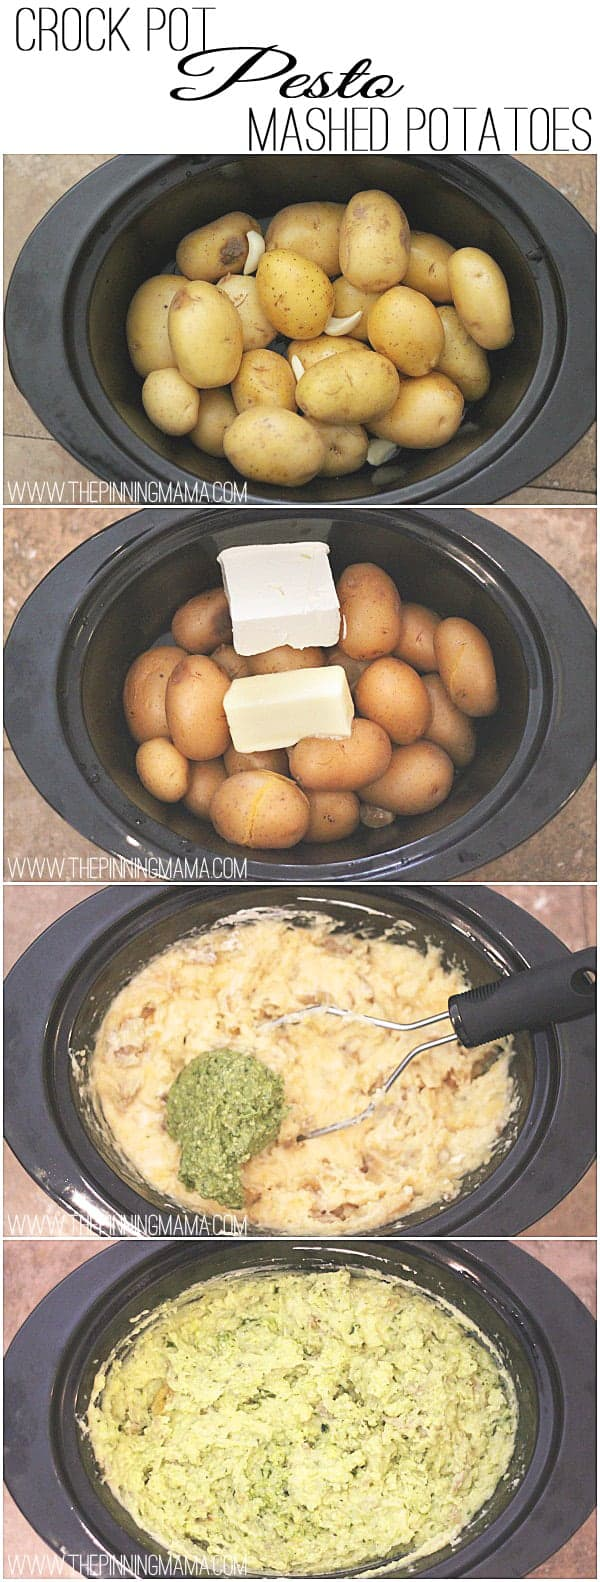 Only 6 ingredients and 4 steps to amazingly delicious Pesto Mashed Potatoes made in your crock pot! Recipe via thepinningmama.com.